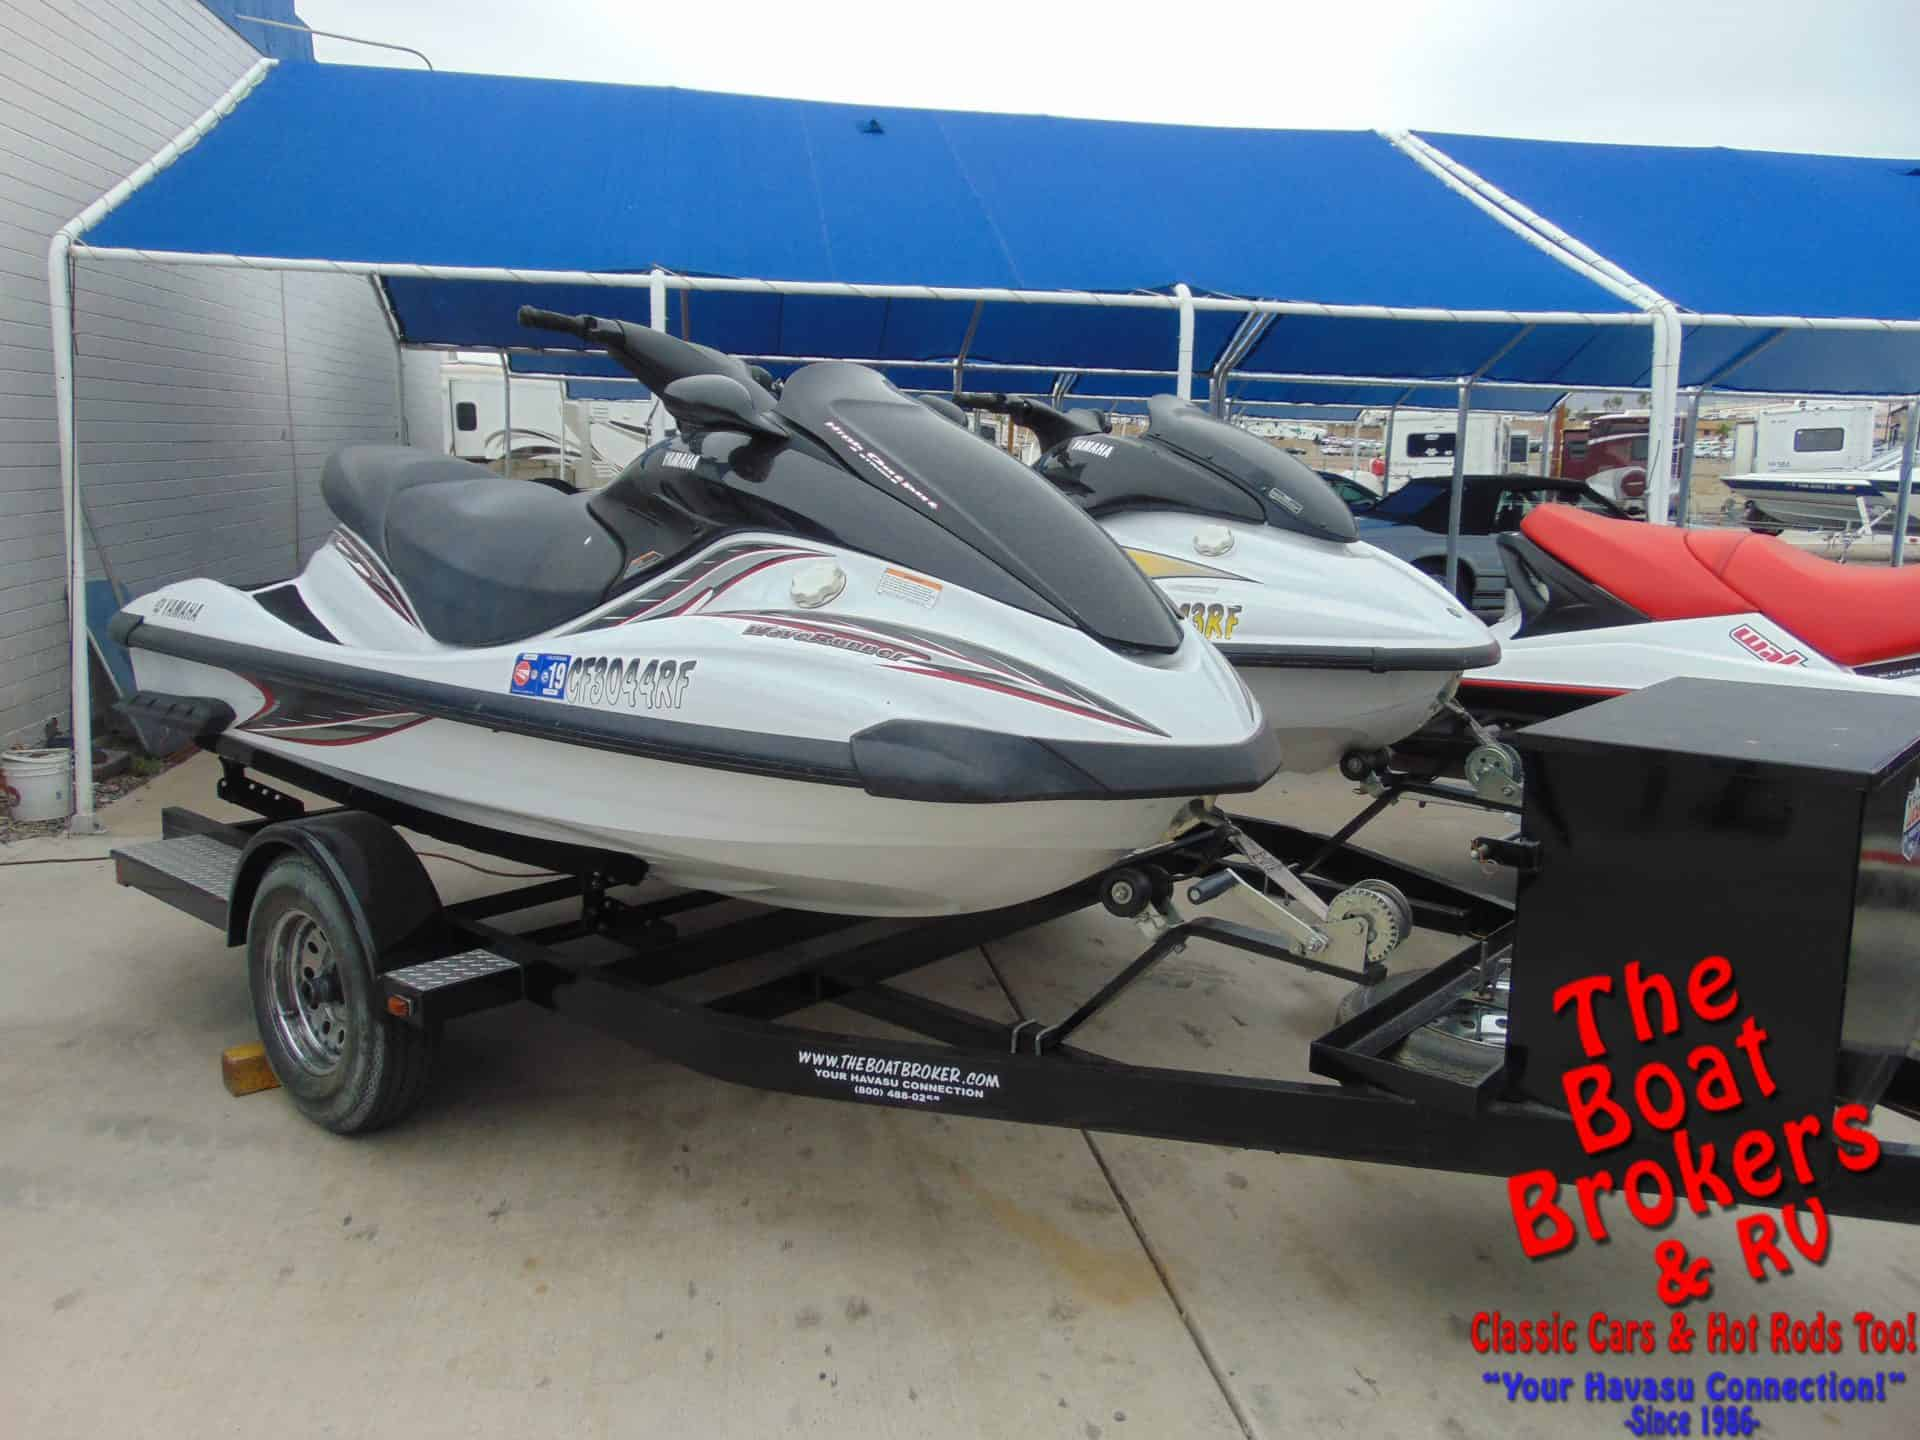 2005 Yamaha Wave Runner Jet Skis 3 Seaters New Amp Used